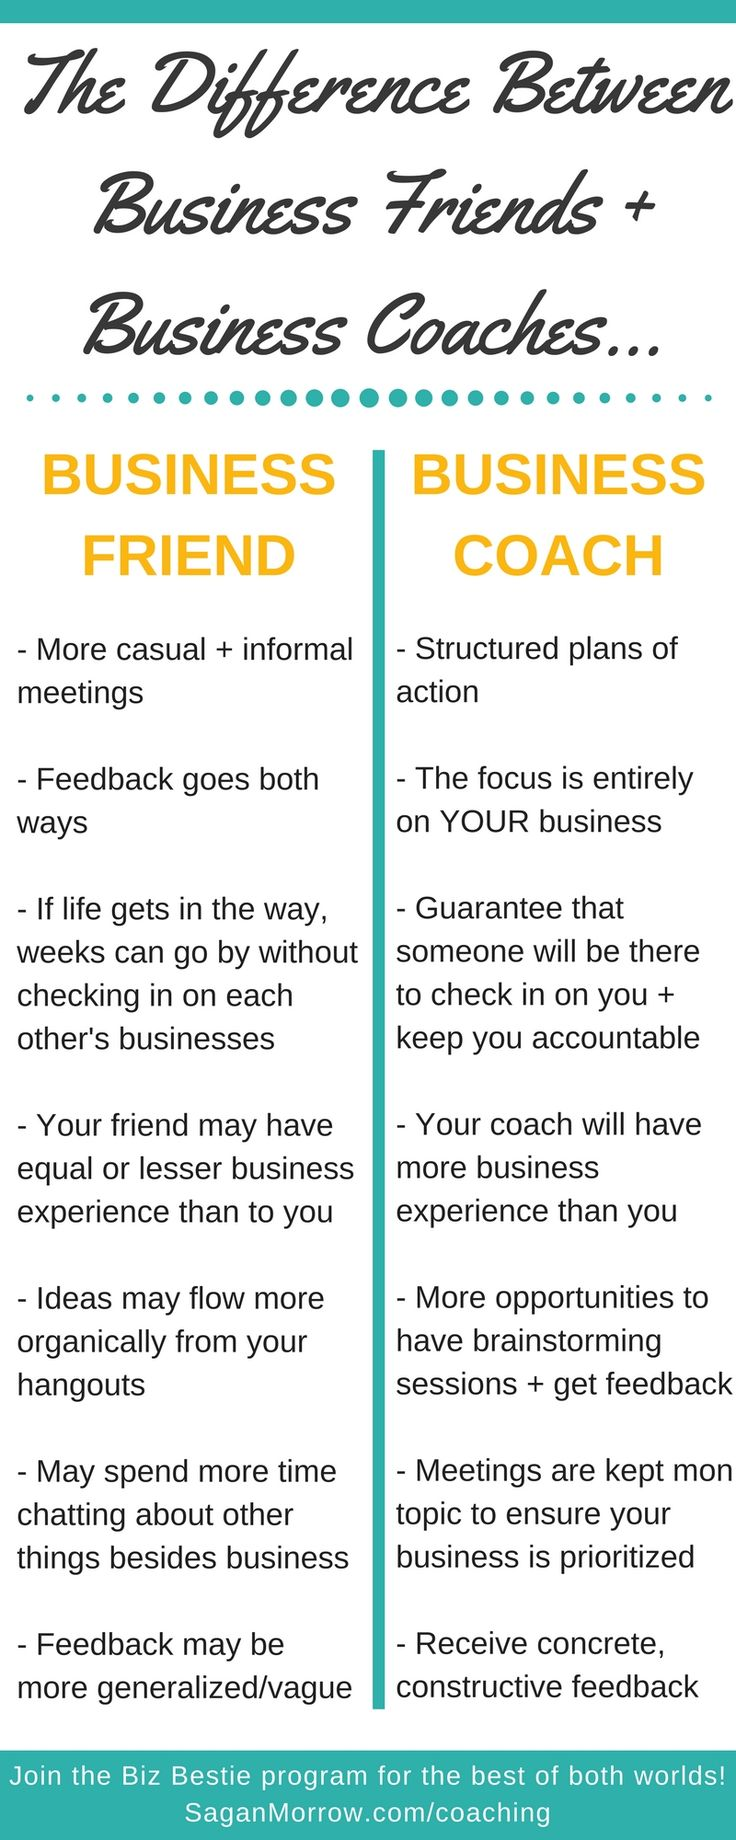 Wondering about the difference between business friend vs business coach... and whether or not a business coach is right for you and your freelance business? Click on over to learn about whether you need a business friend or business coach to help start + grow your business!